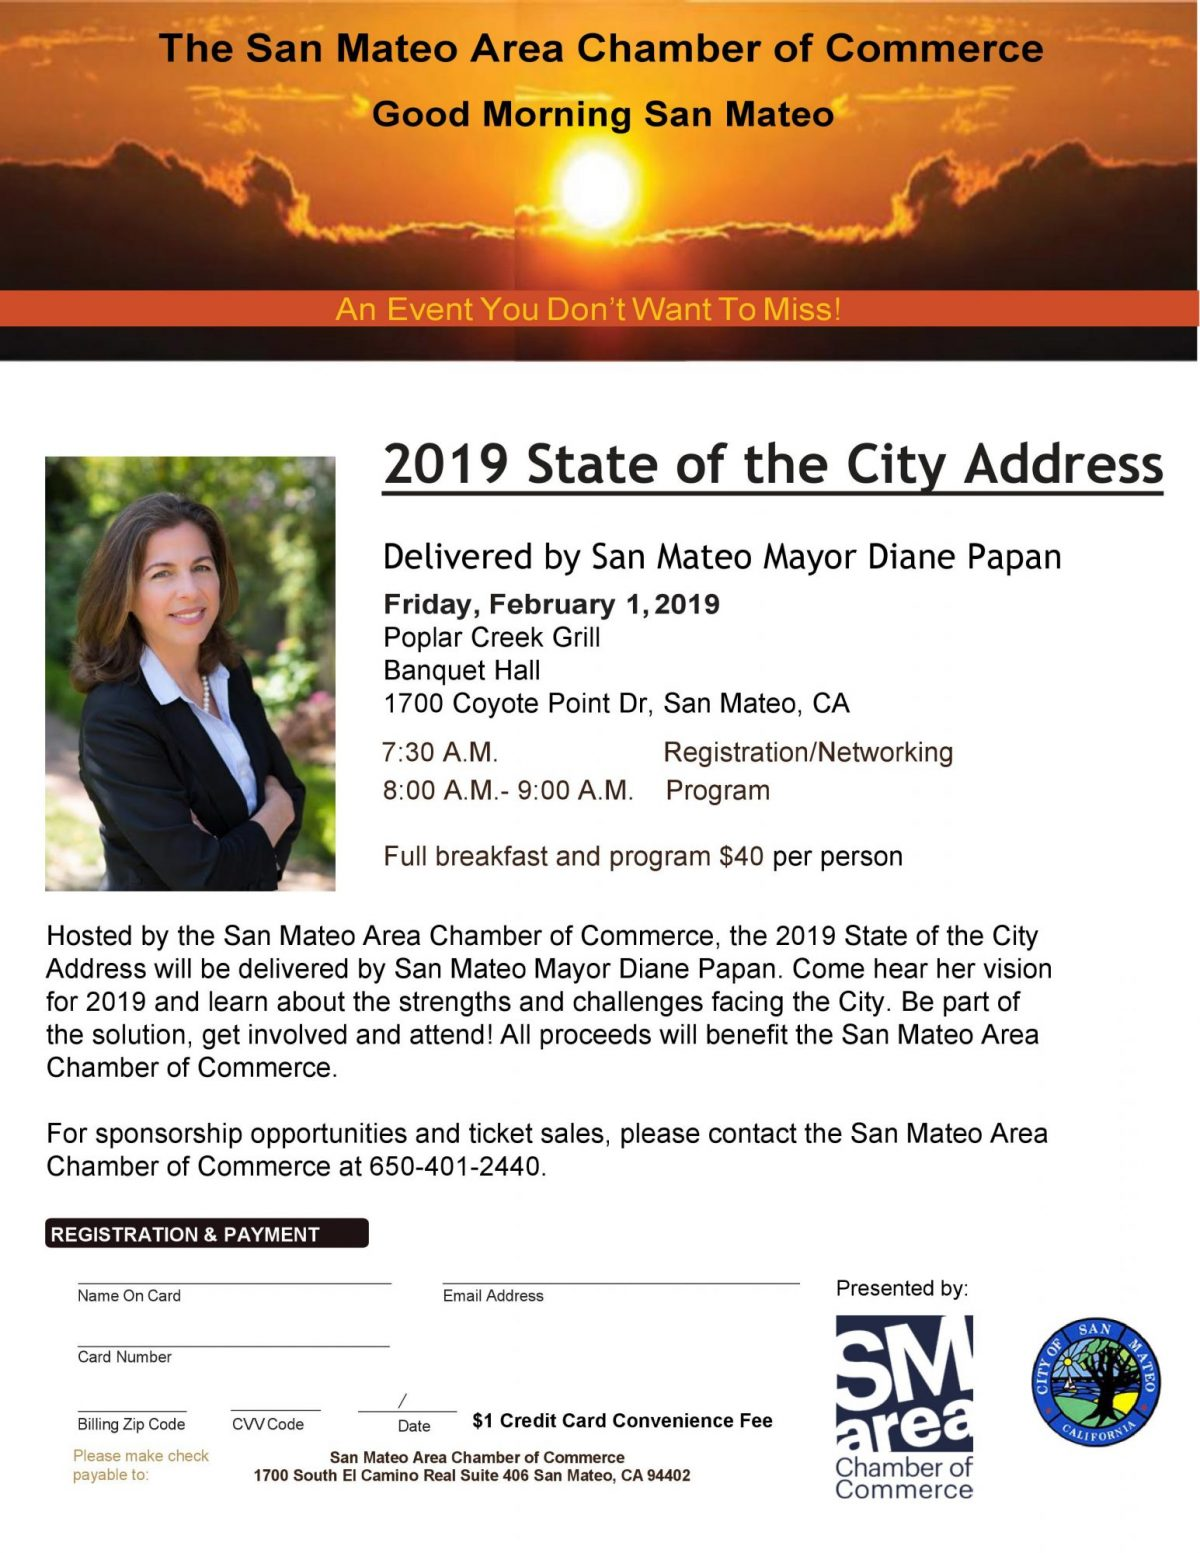 Good Morning SM 2019 State of the City Flyer